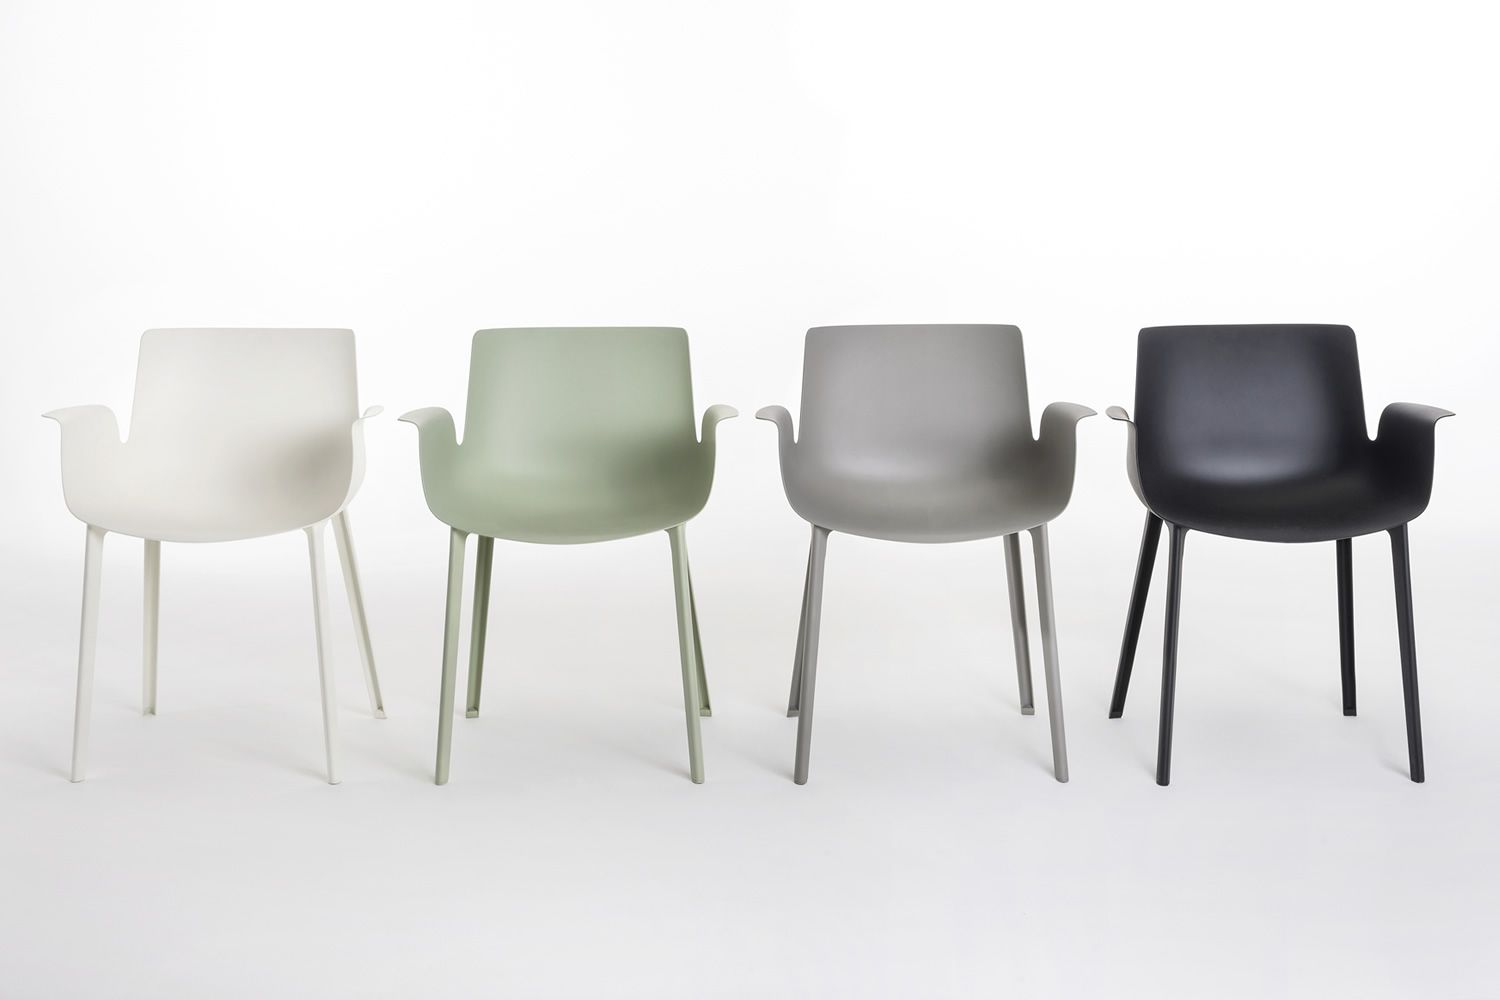 Piuma sedia kartell di design in tecnopolimero for Sgabelli kartell outlet